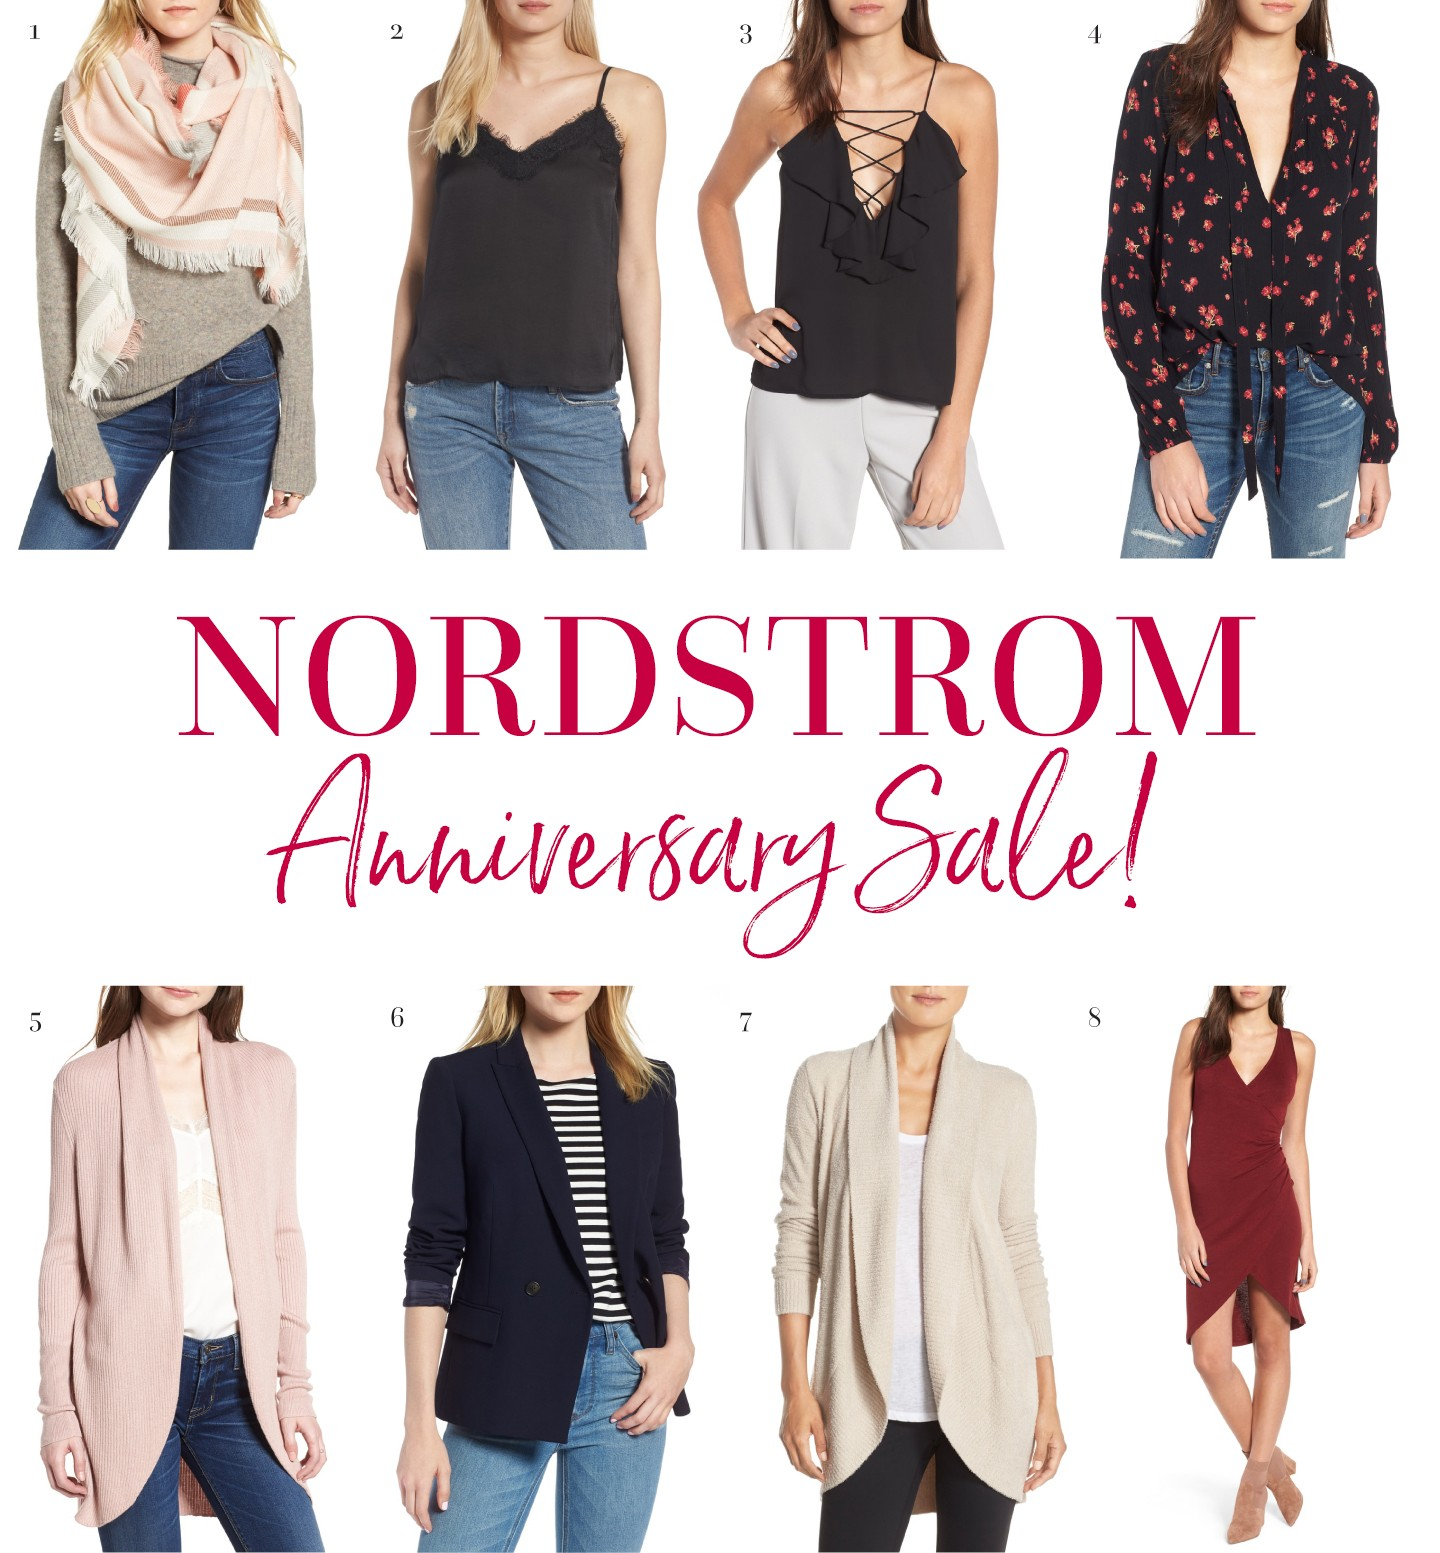 4c95266ef Nordstrom Anniversary Sale - What I Bought! - Chase Amie